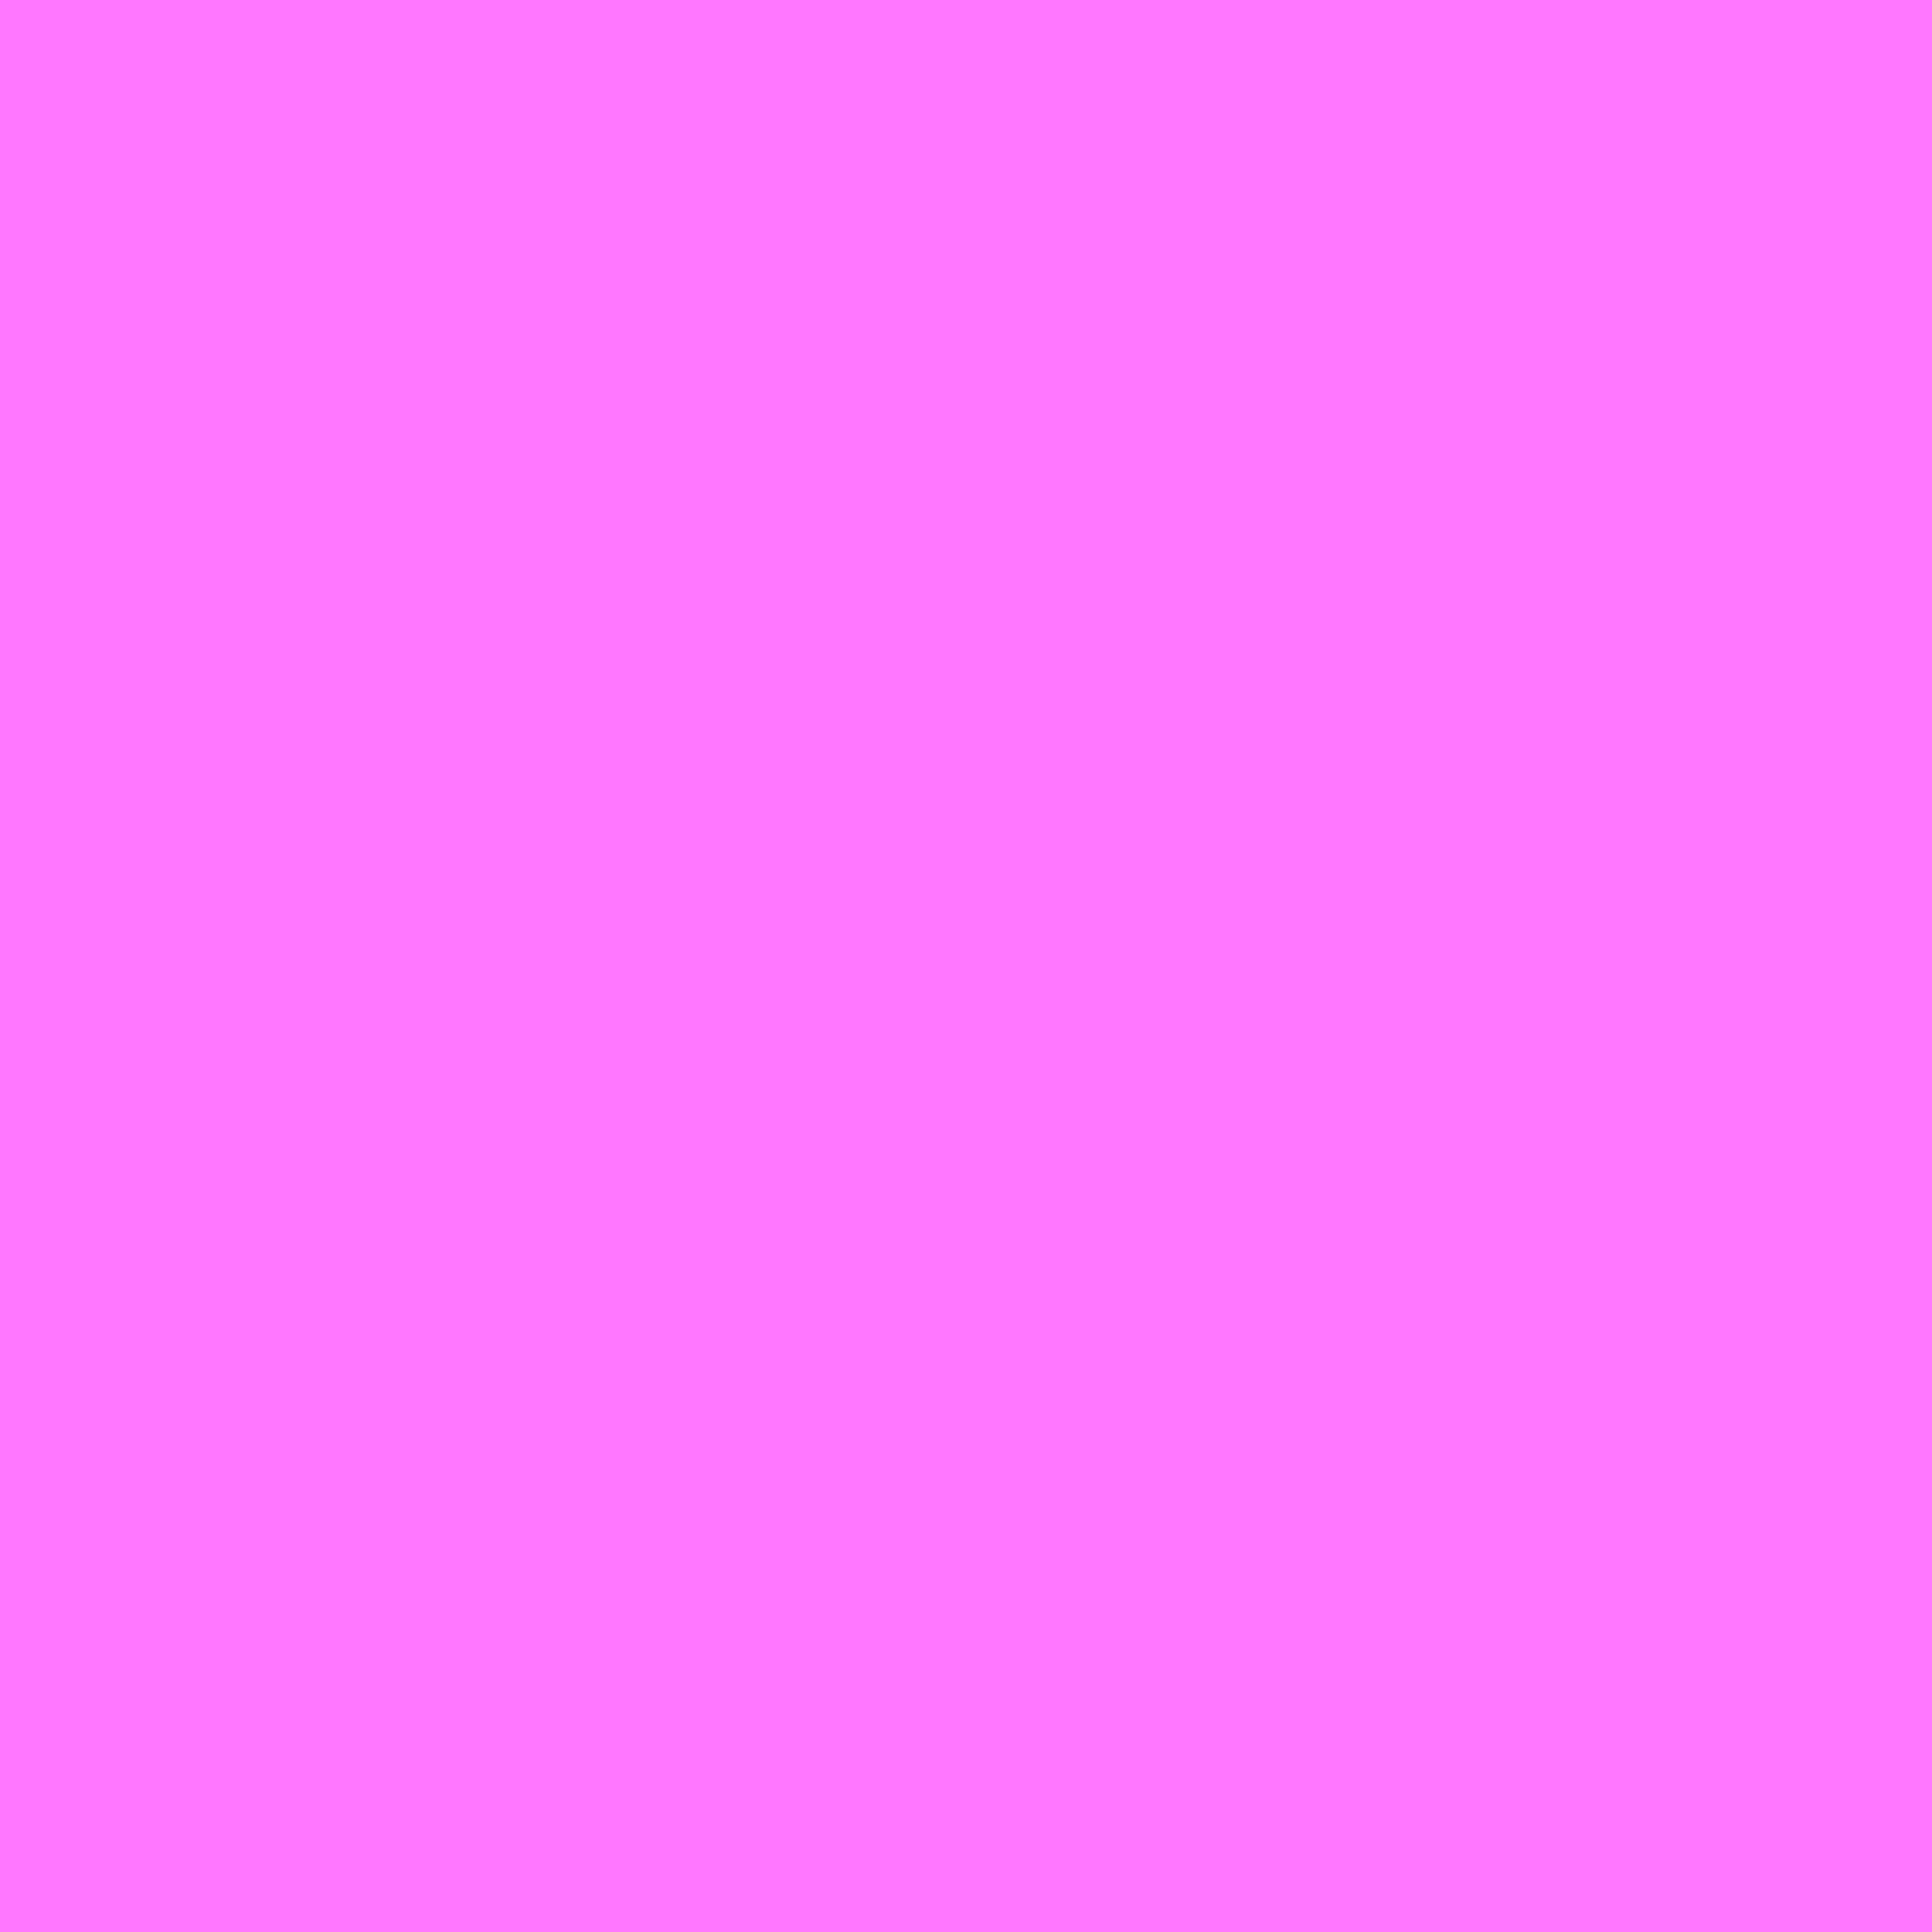 2048x2048 Fuchsia Pink Solid Color Background